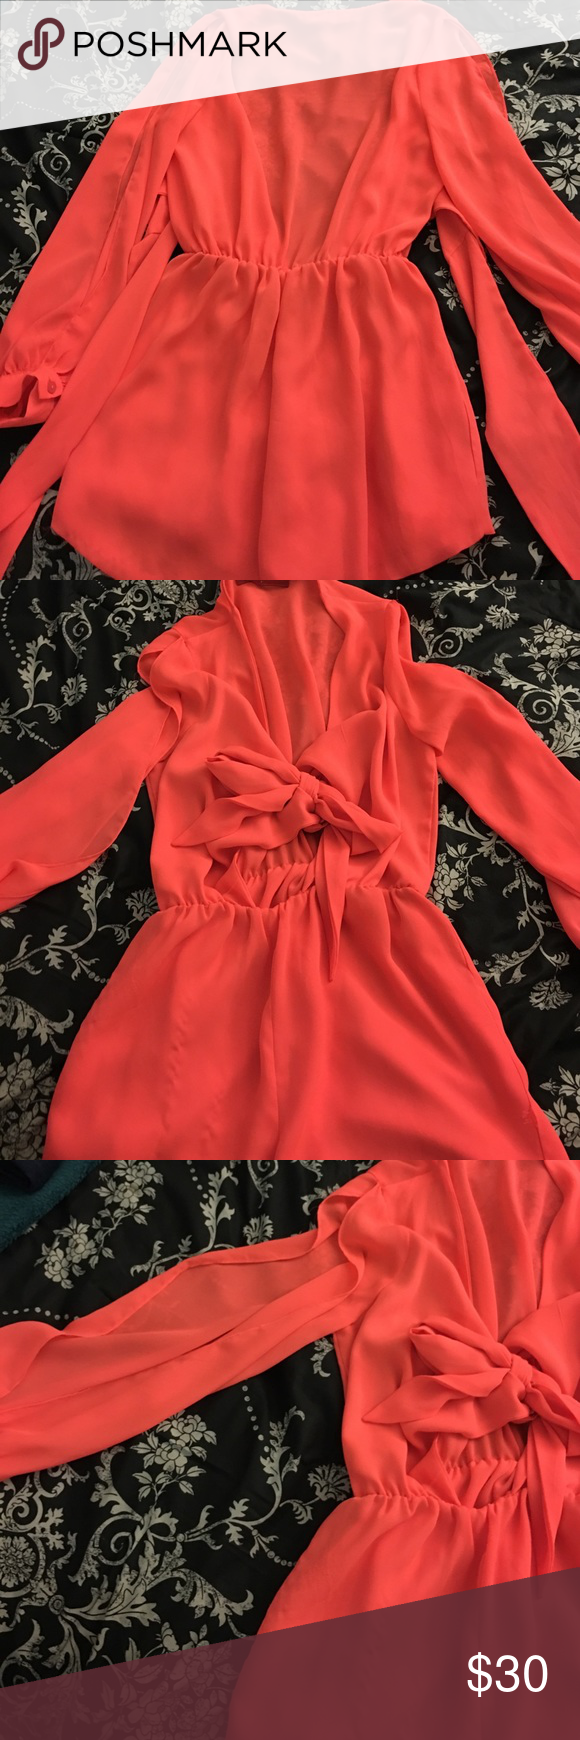 Akira romper V neck with tie chiffon neon coral This neon coral romper from AKIRA Chicago has only been worn twice and is super cute! It ties up in the front and is chiffon material. AKIRA Pants Jumpsuits & Rompers